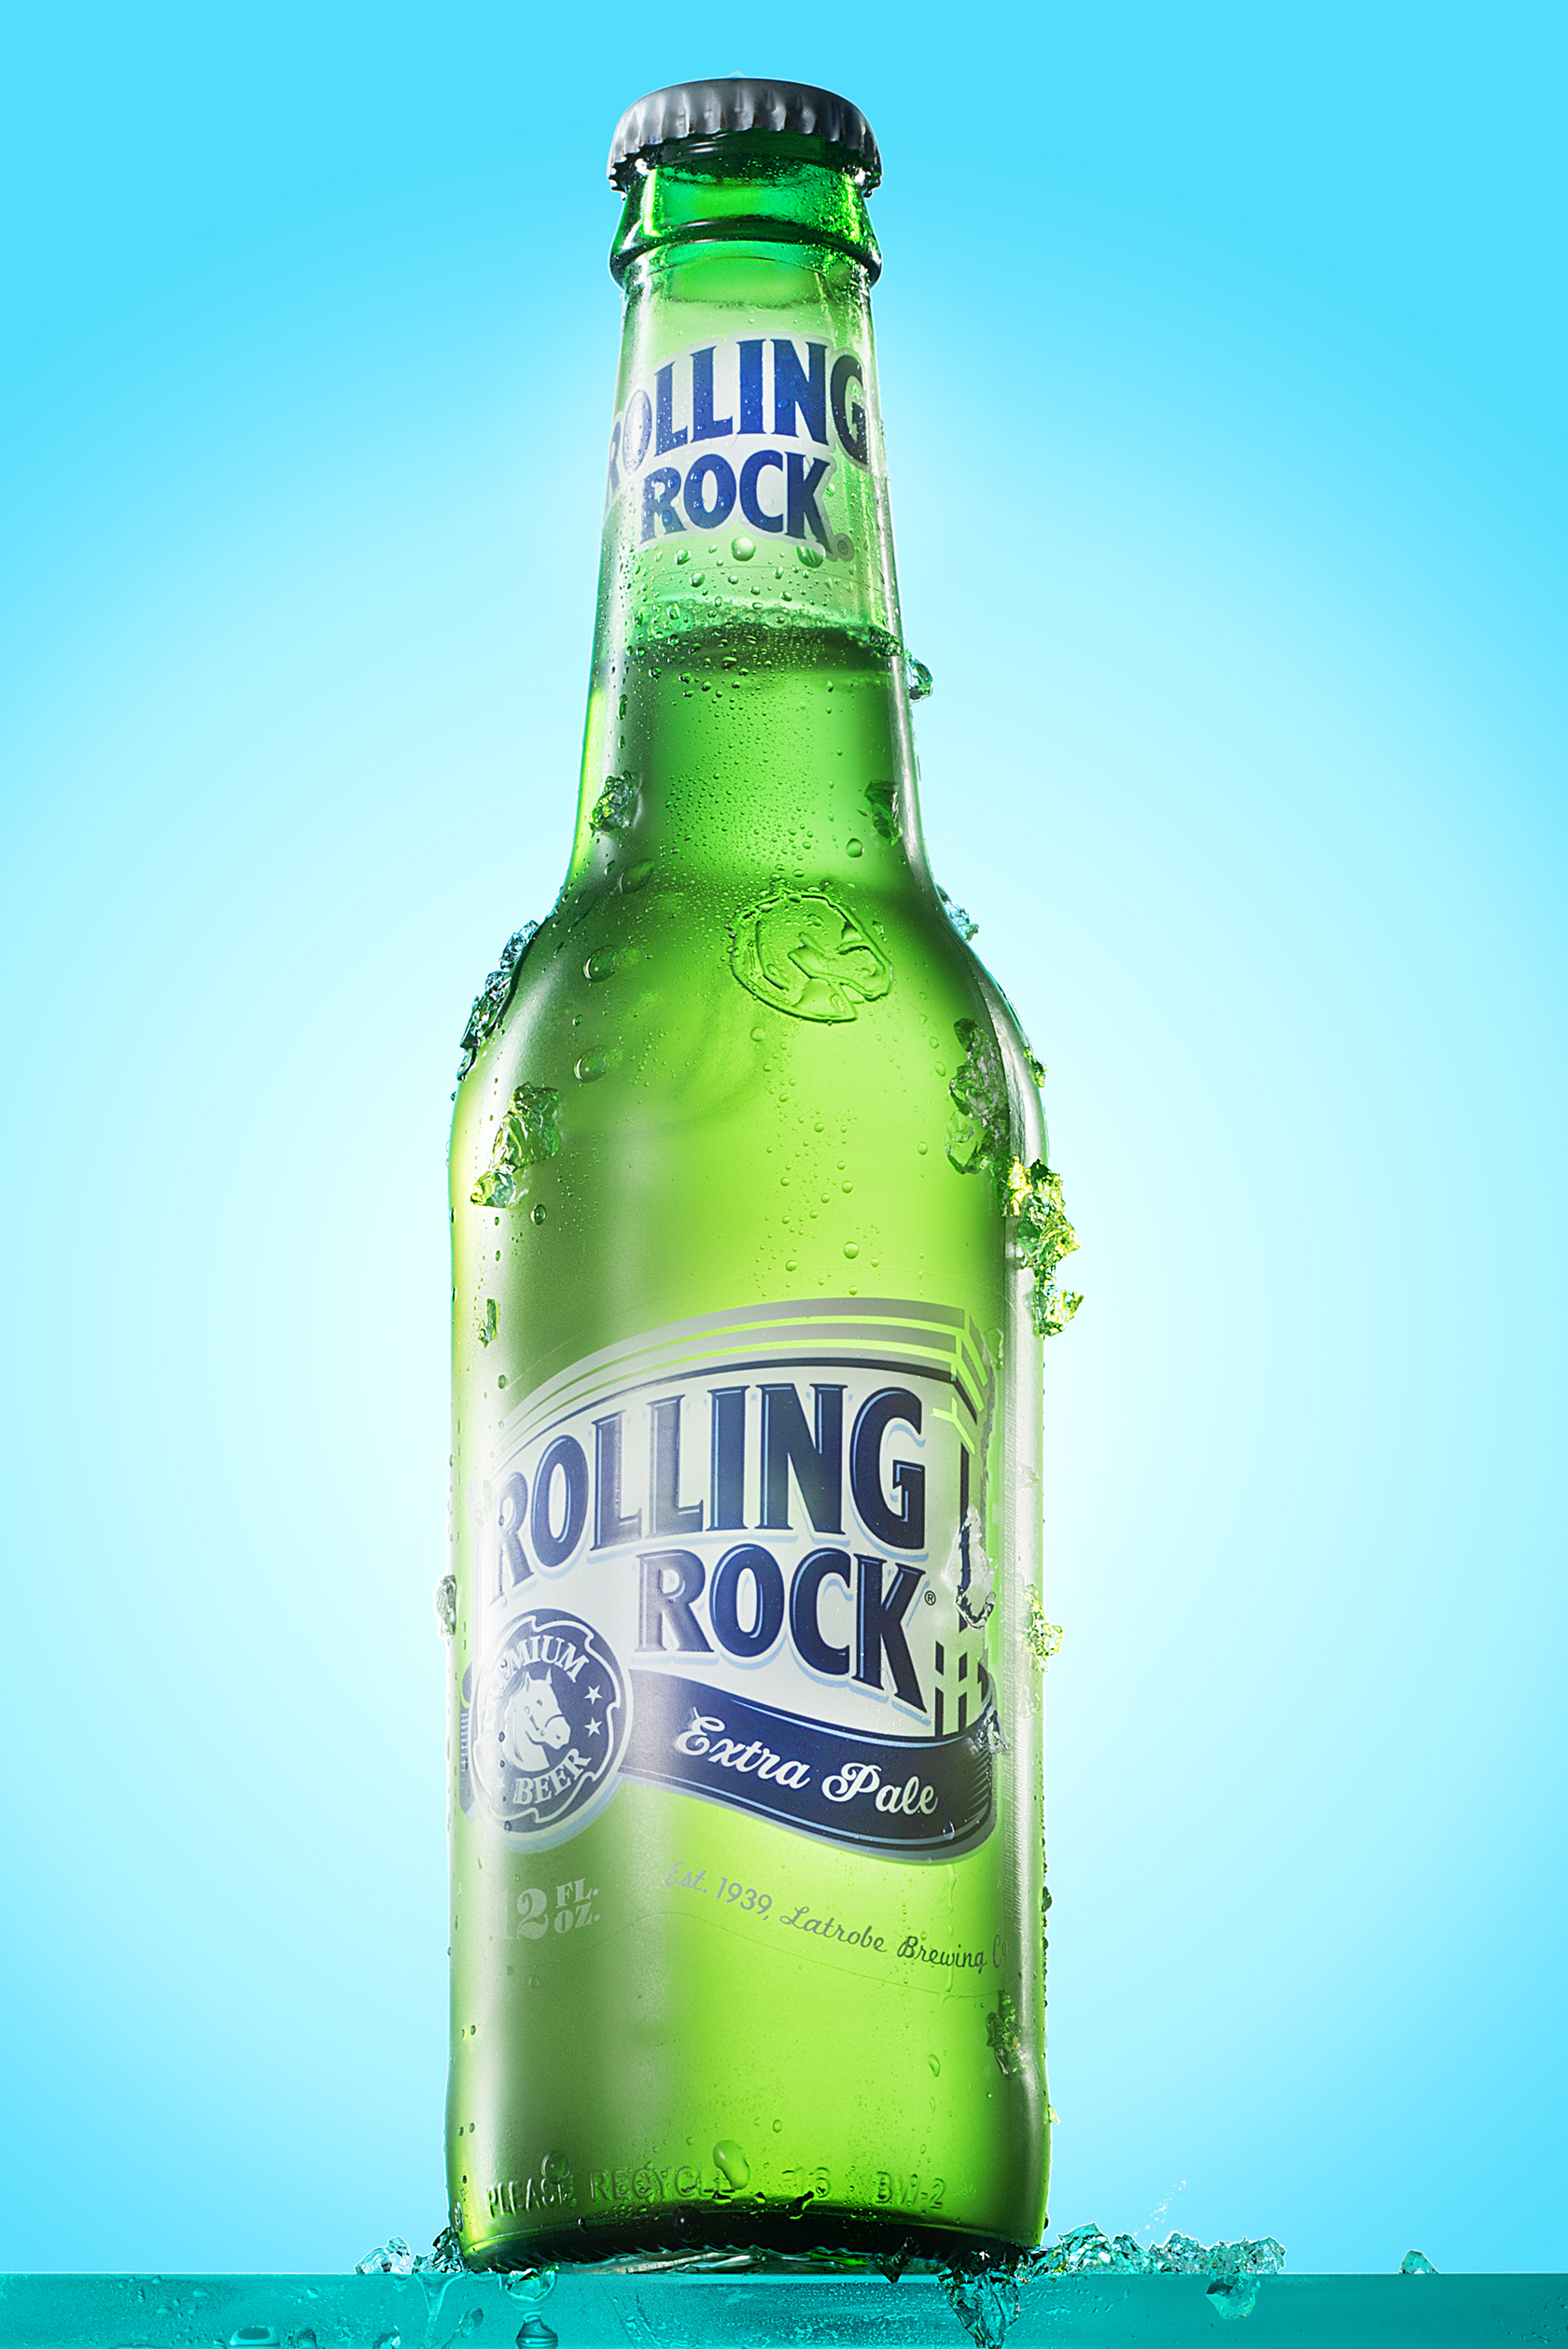 Rolling-stone-beverage-still-life-photo